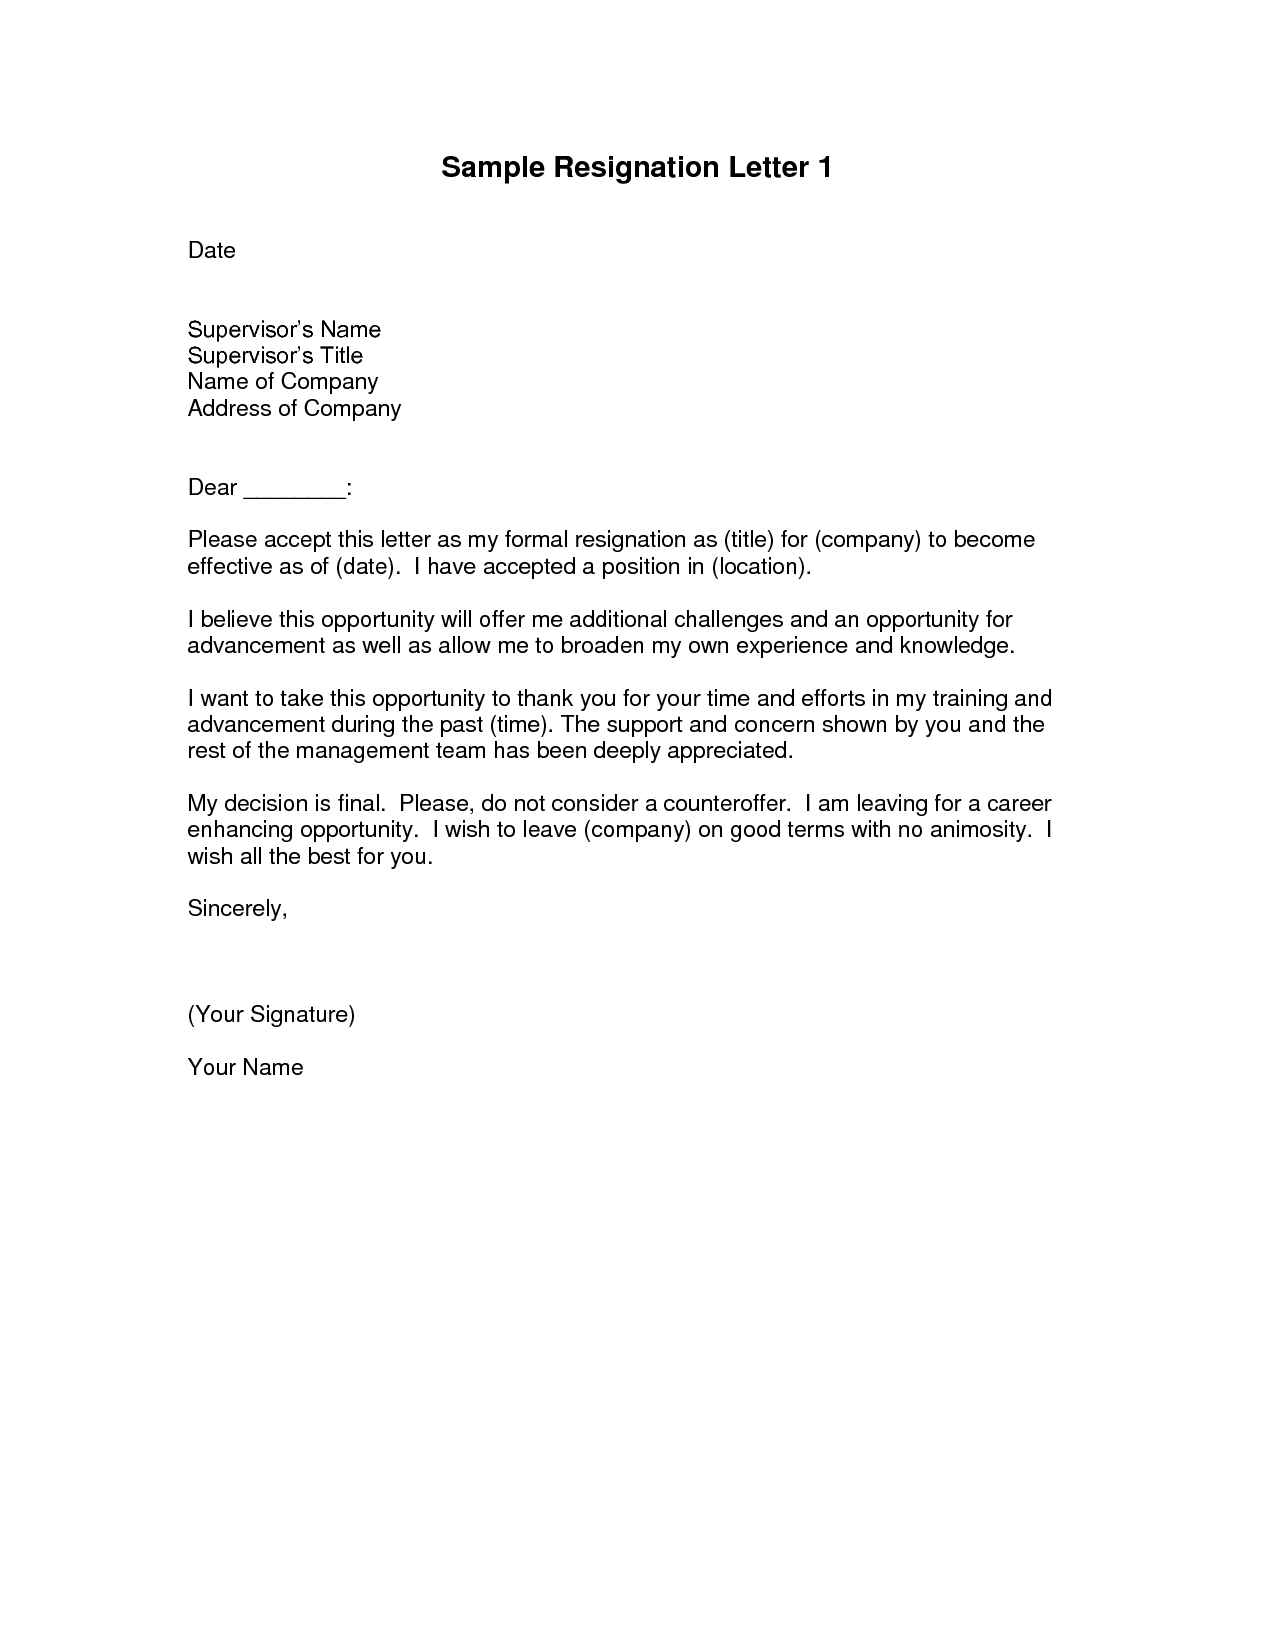 Wonderful Sample Resignation Template Free Letter Of Resignation Template Resignation  Letter Samples, Simple Resignation Letter Template 24 Free Word Excel Pdf,  ... And Free Sample Resignation Letter Template